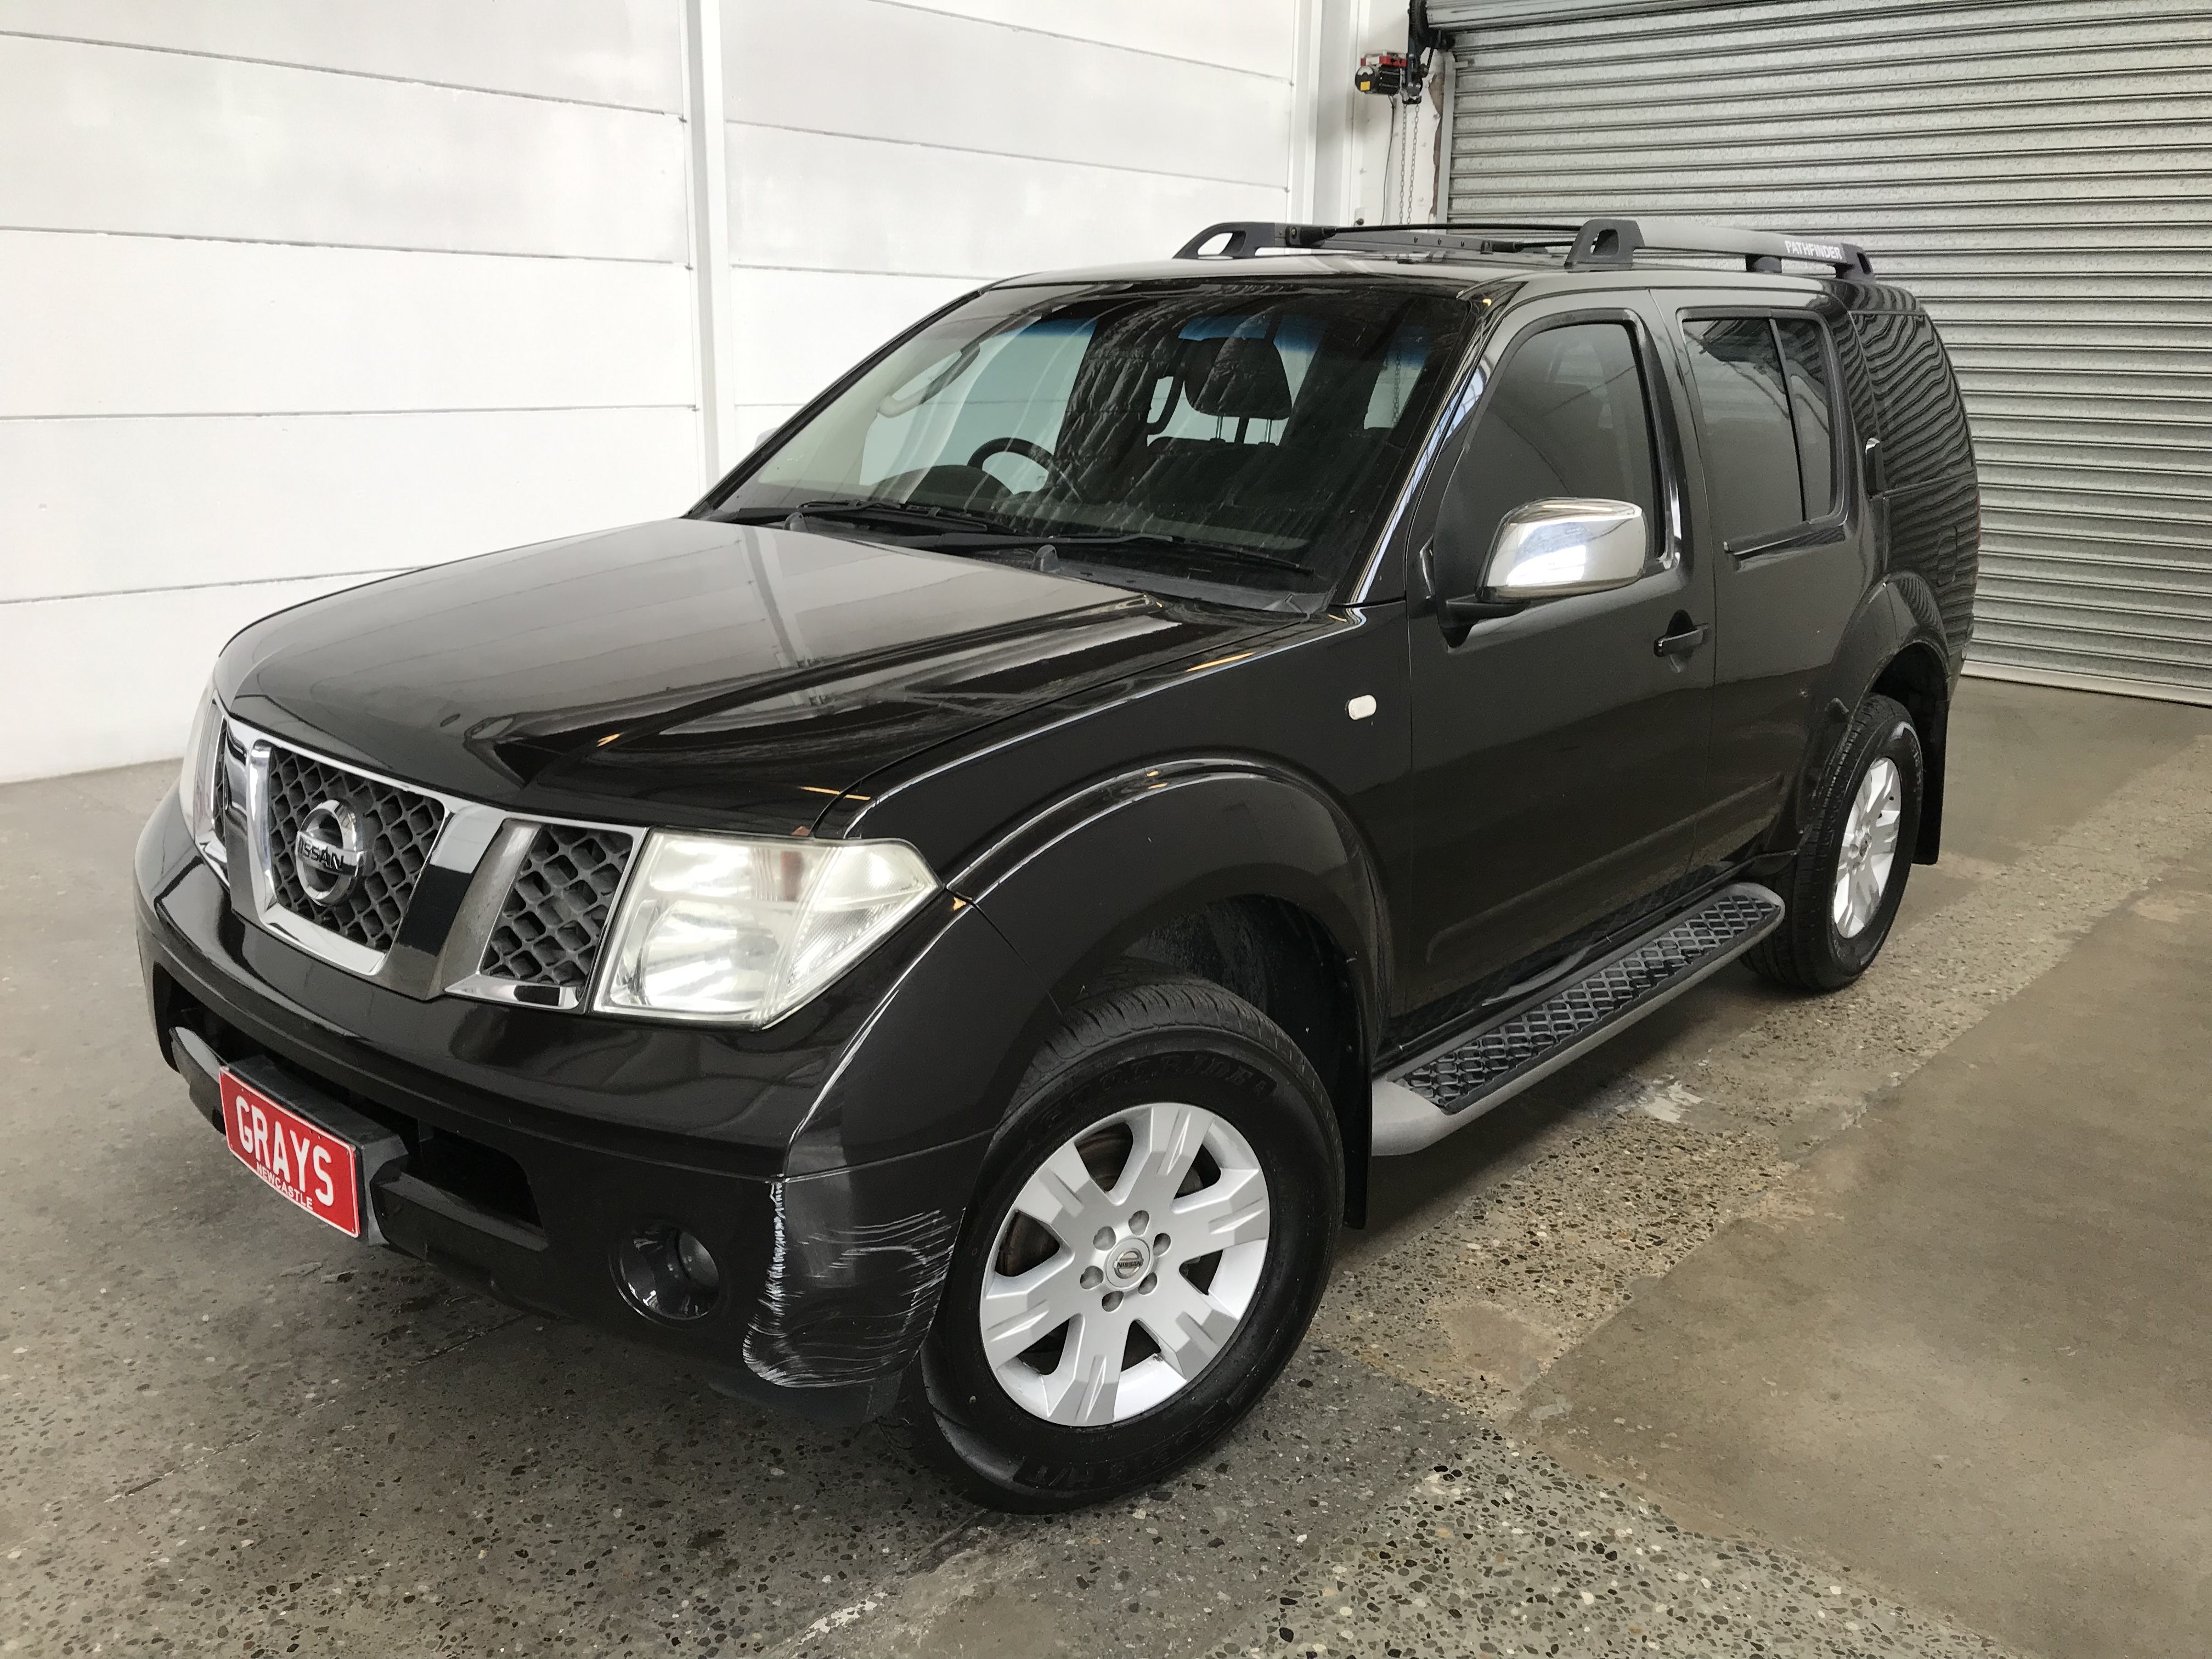 2007 Nissan Pathfinder ST-L (4x4) R51 Manual 7 Seats Wagon (WOVR)